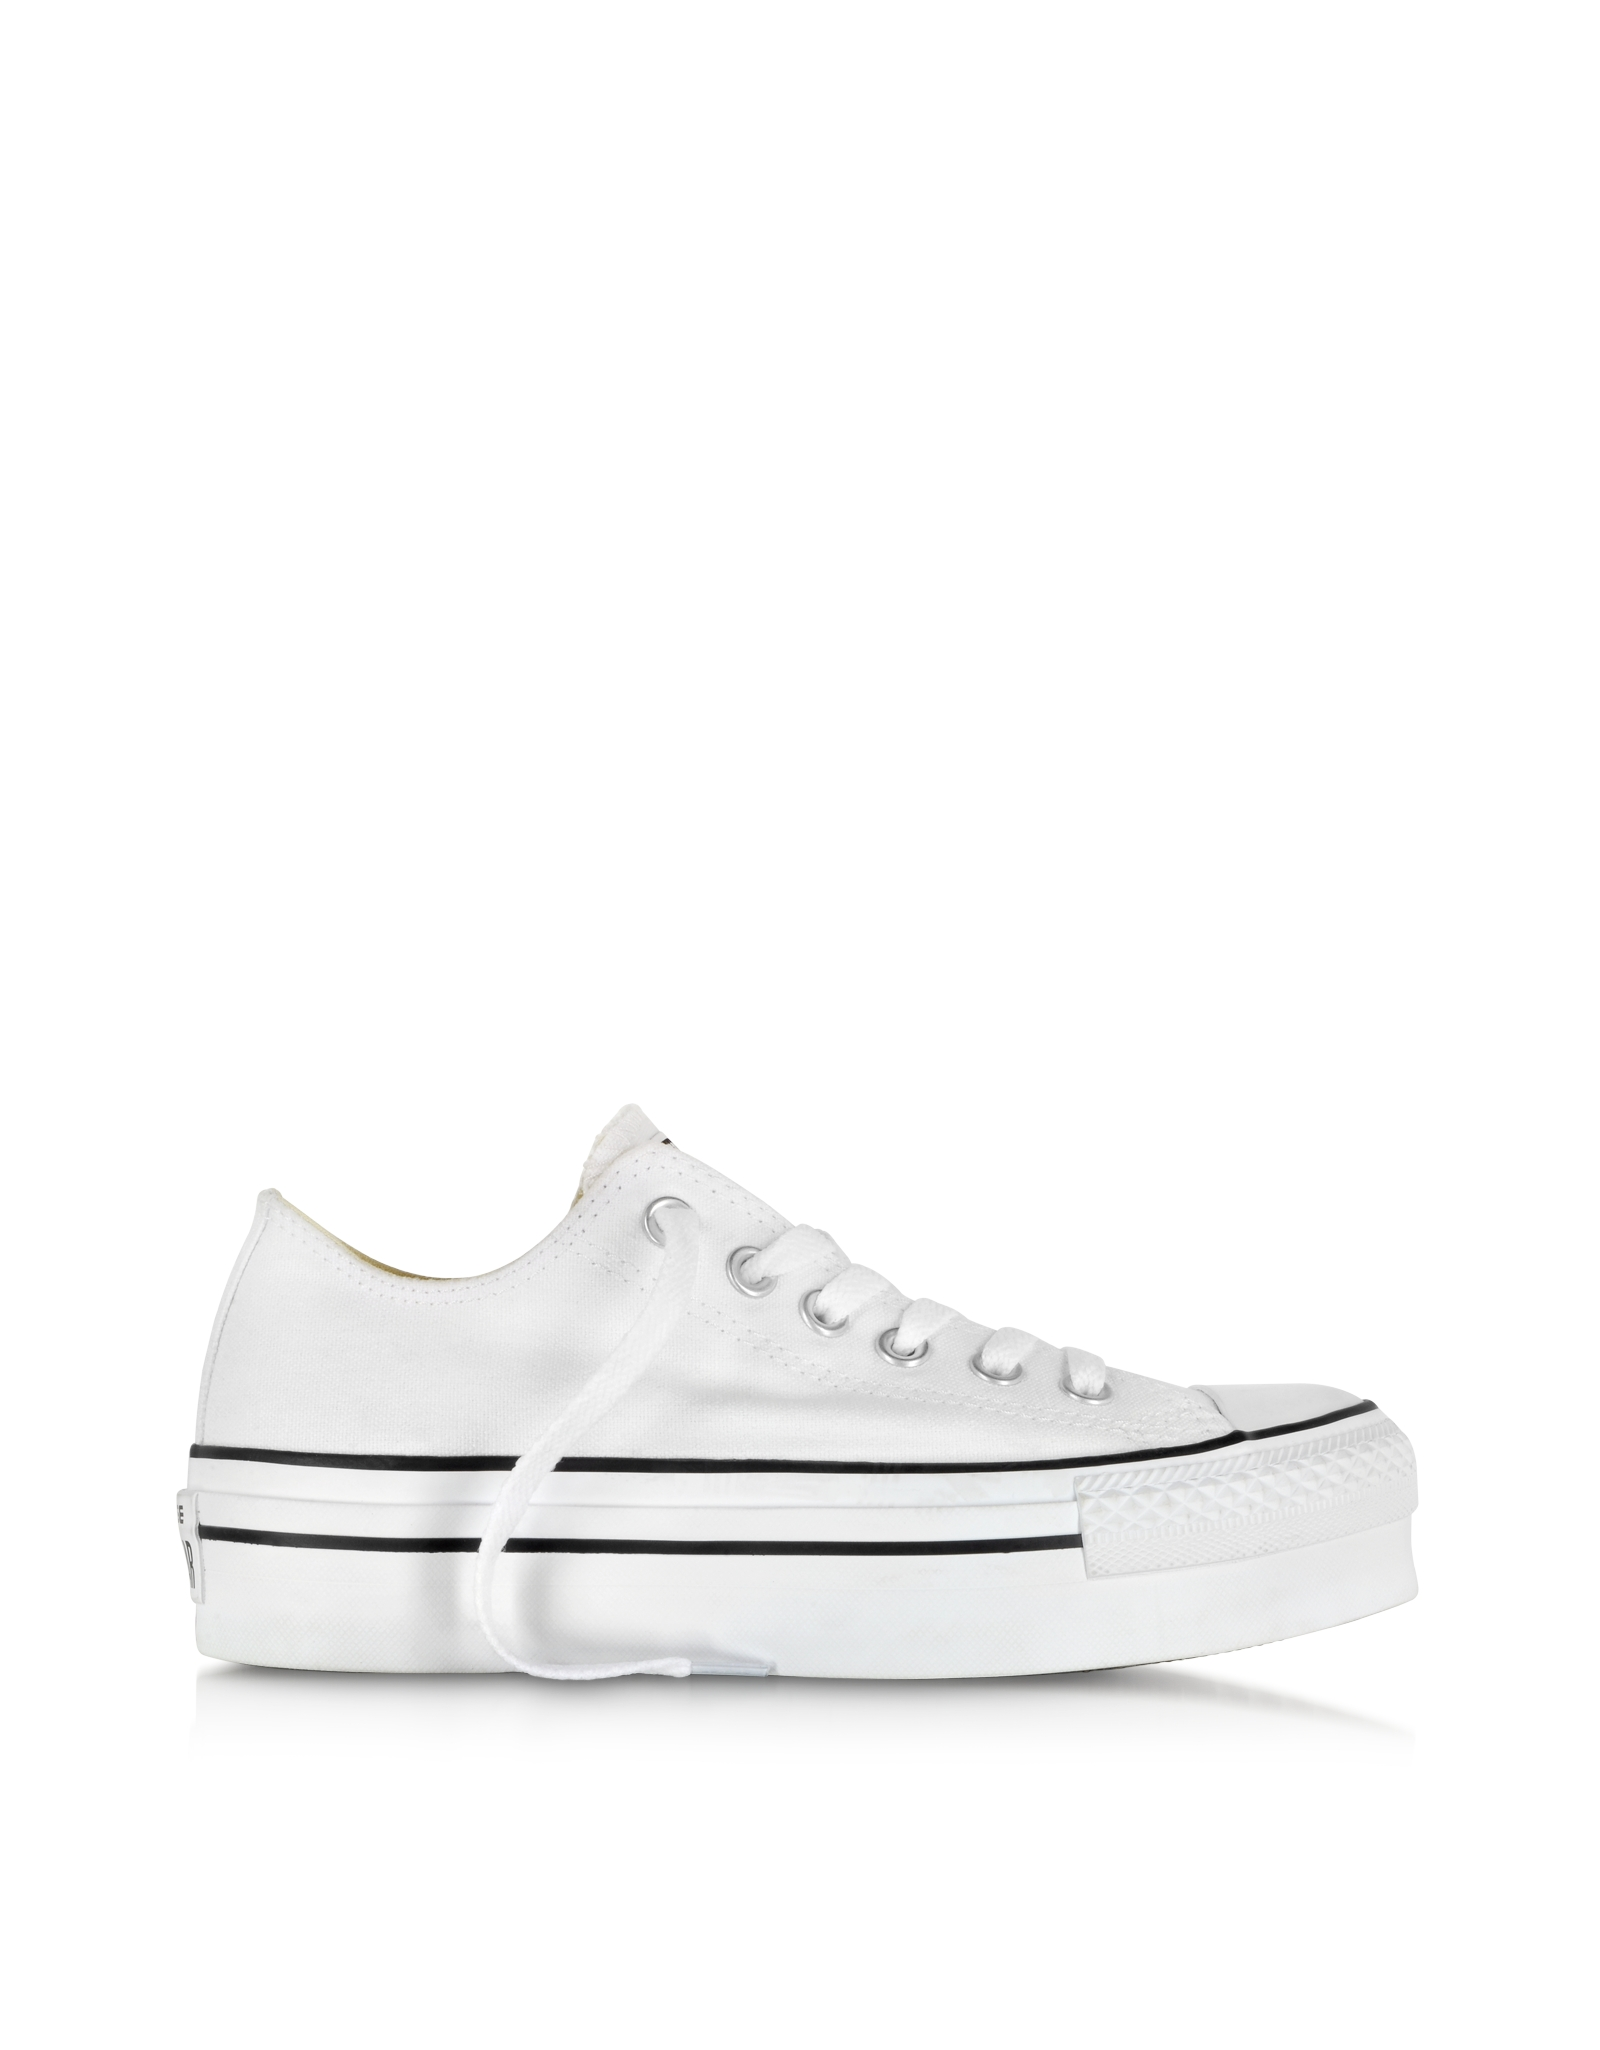 Converse limited edition all star ox white canvas platform sneaker